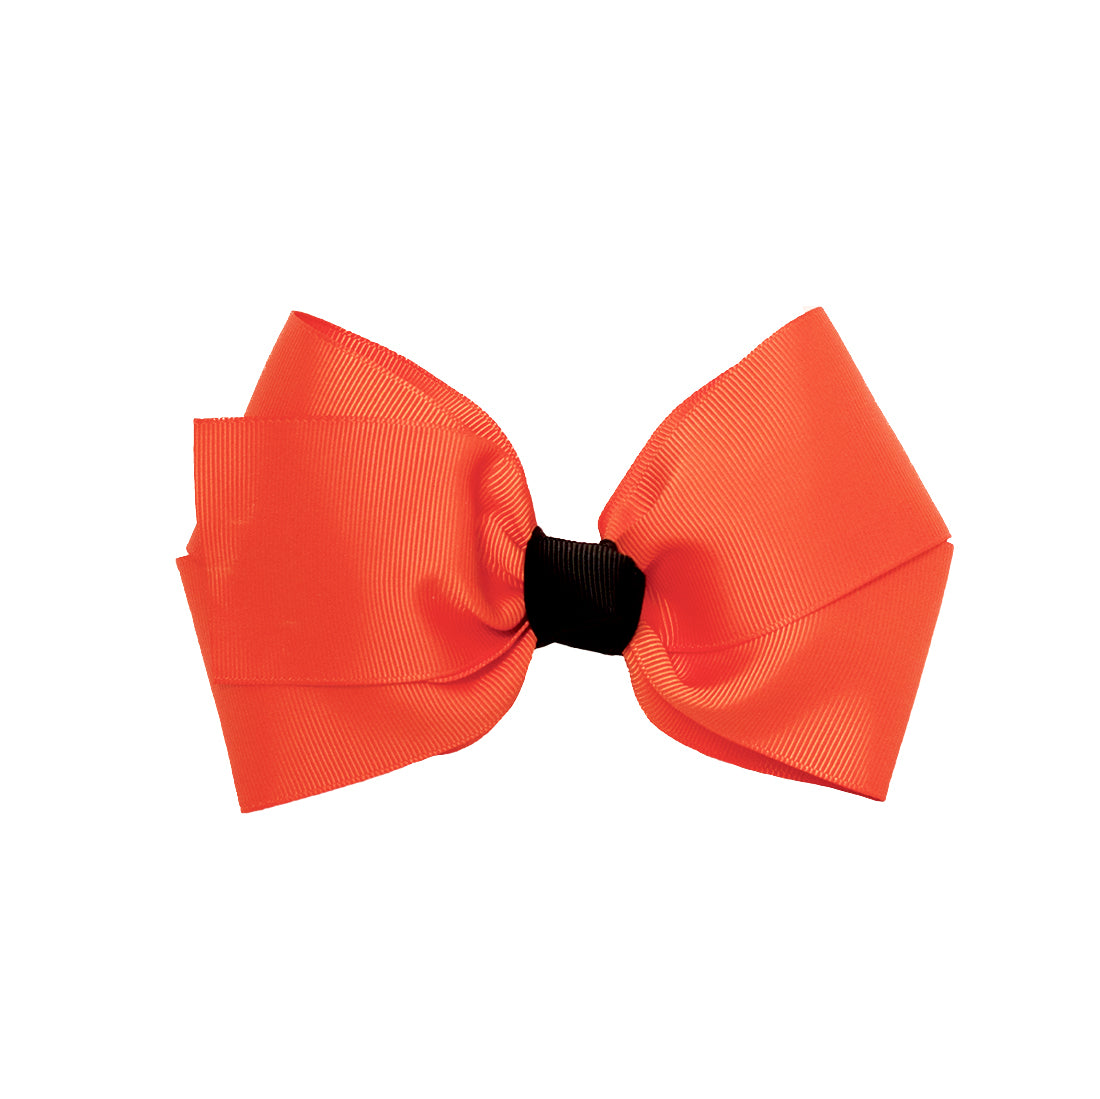 Mia® Spirit Grosgrain Ribbon Hair Bow Barrette with contrast ceneter color - hair accessory - large size - orange with black center - designed by #MiaKaminski of Mia Beauty